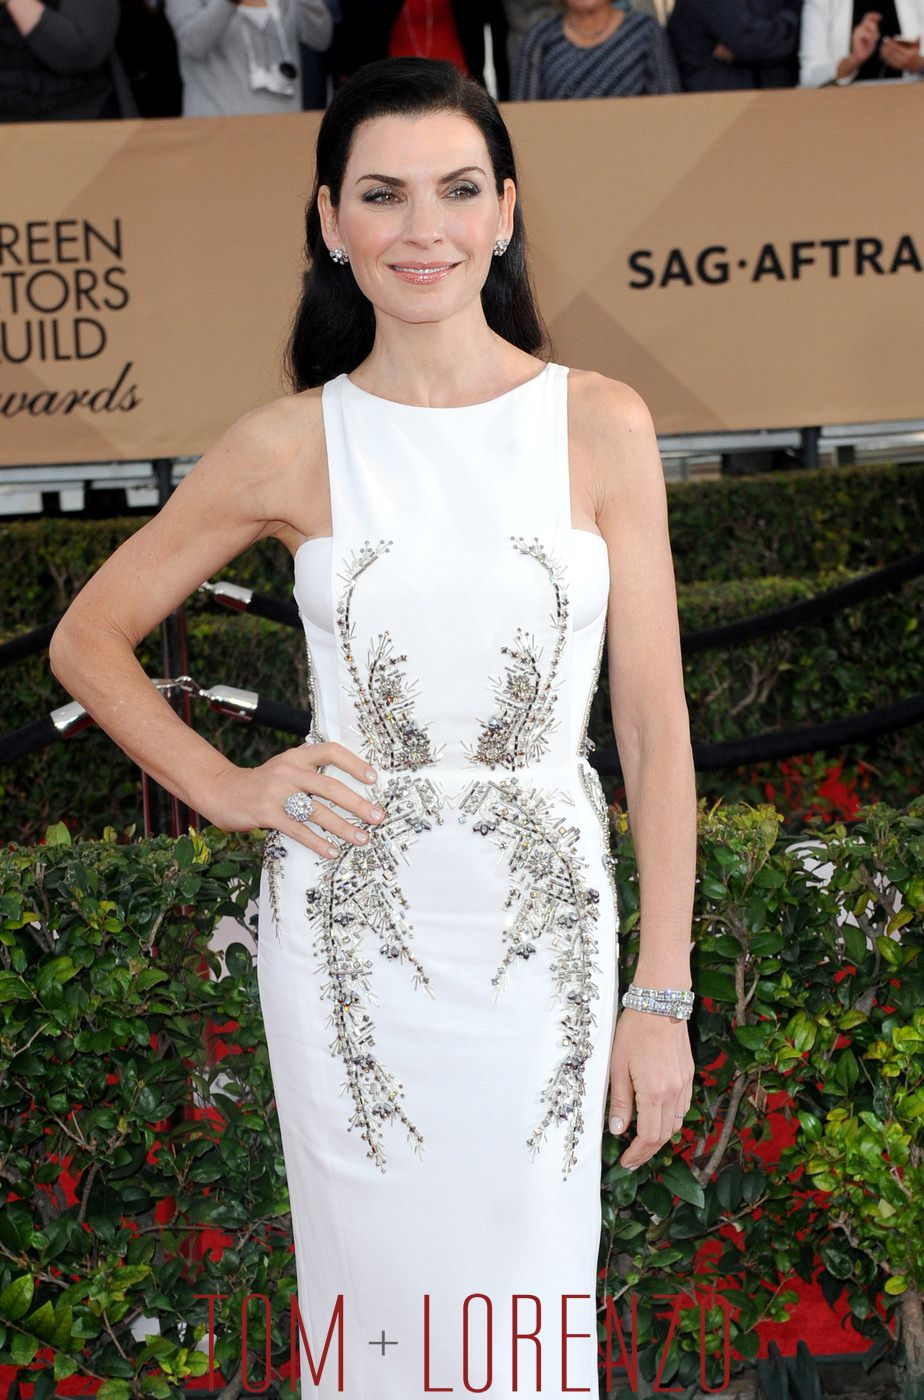 SAG Awards 2016 Julianna Margulies In Antonio Berardi